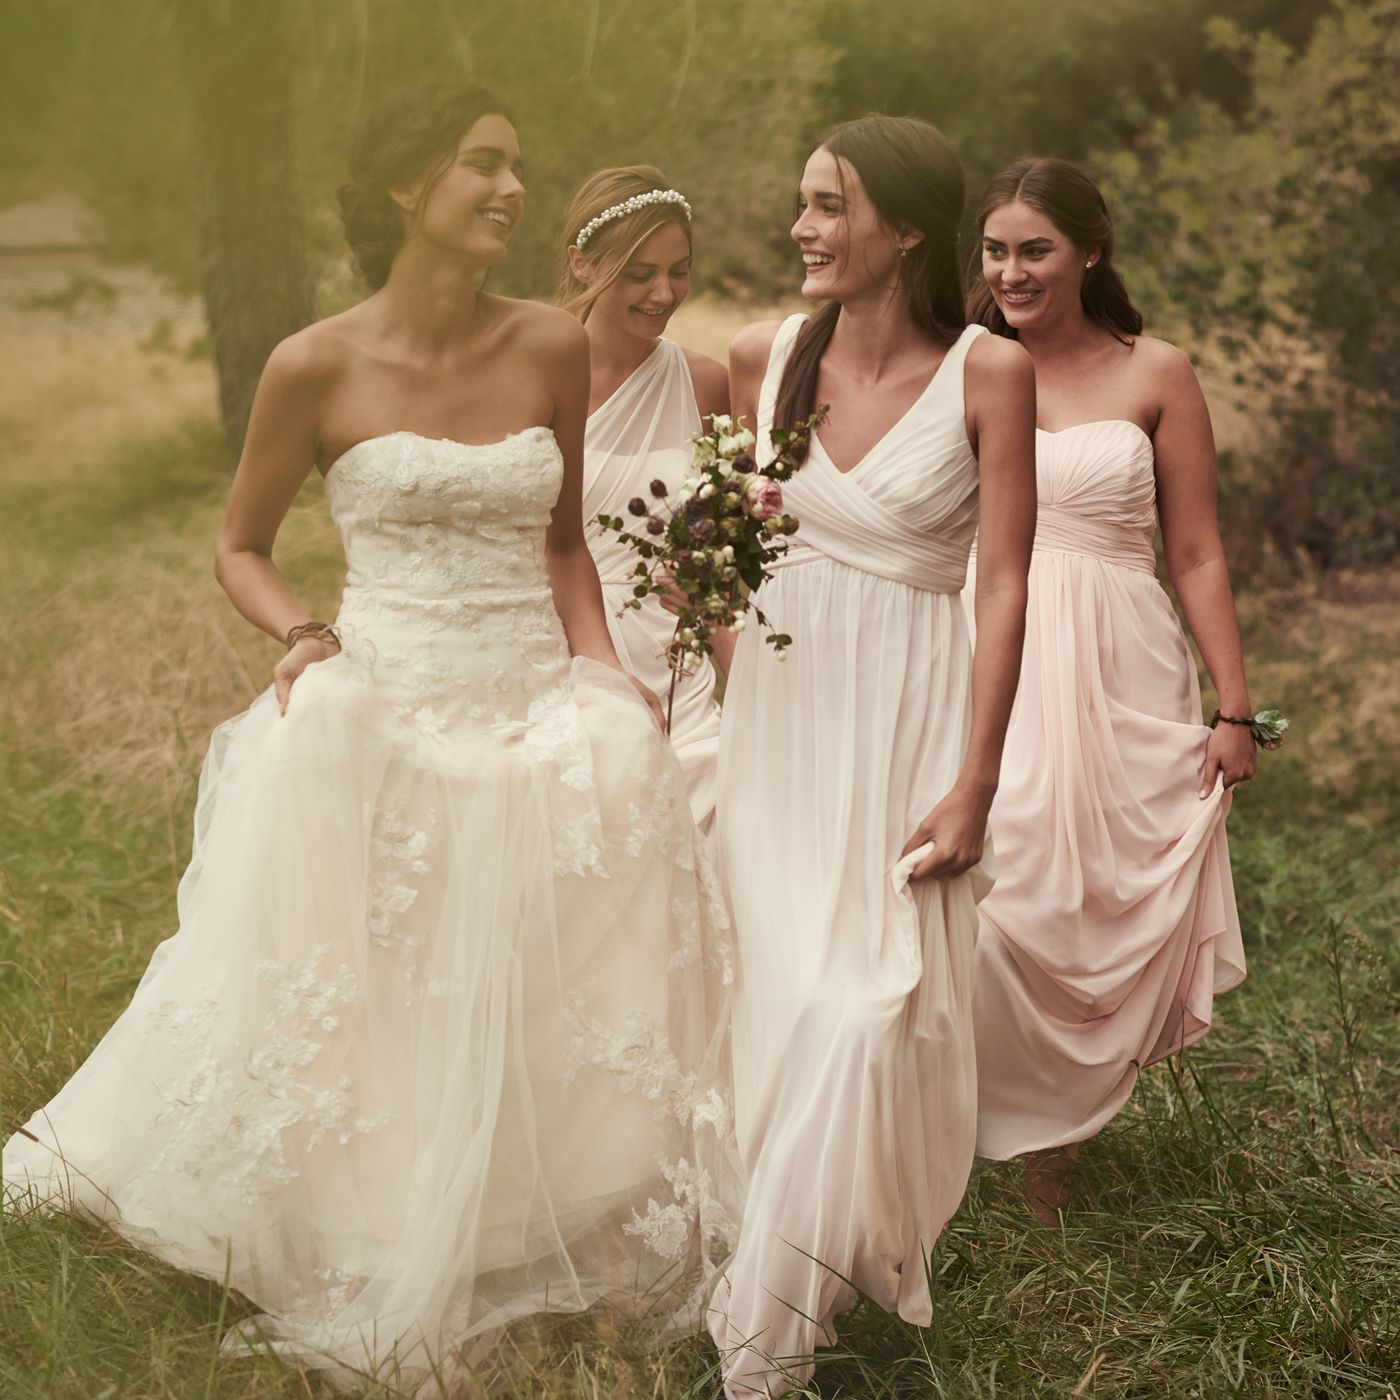 David S Bridal Doesn T Want To Be The Walmart Of Weddings Anymore